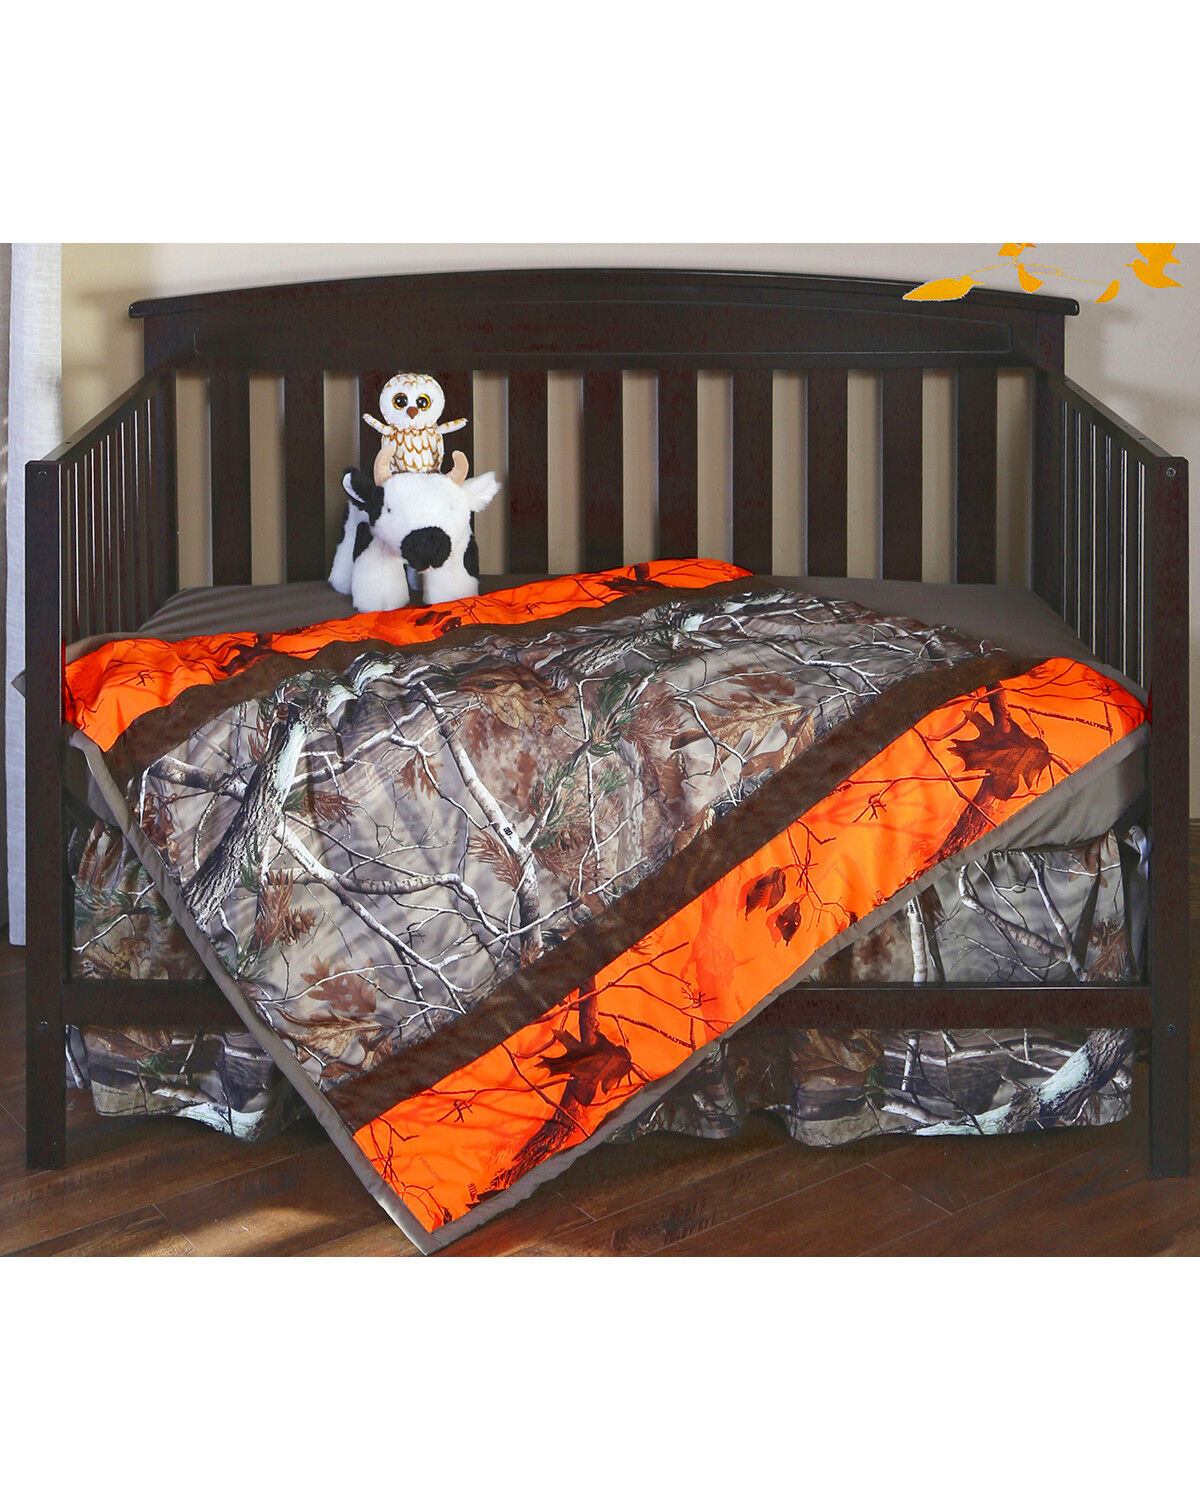 Carstens Realtree AP U0026 AP Blaze Camo Crib Set   3 Piece , Orange, Hi